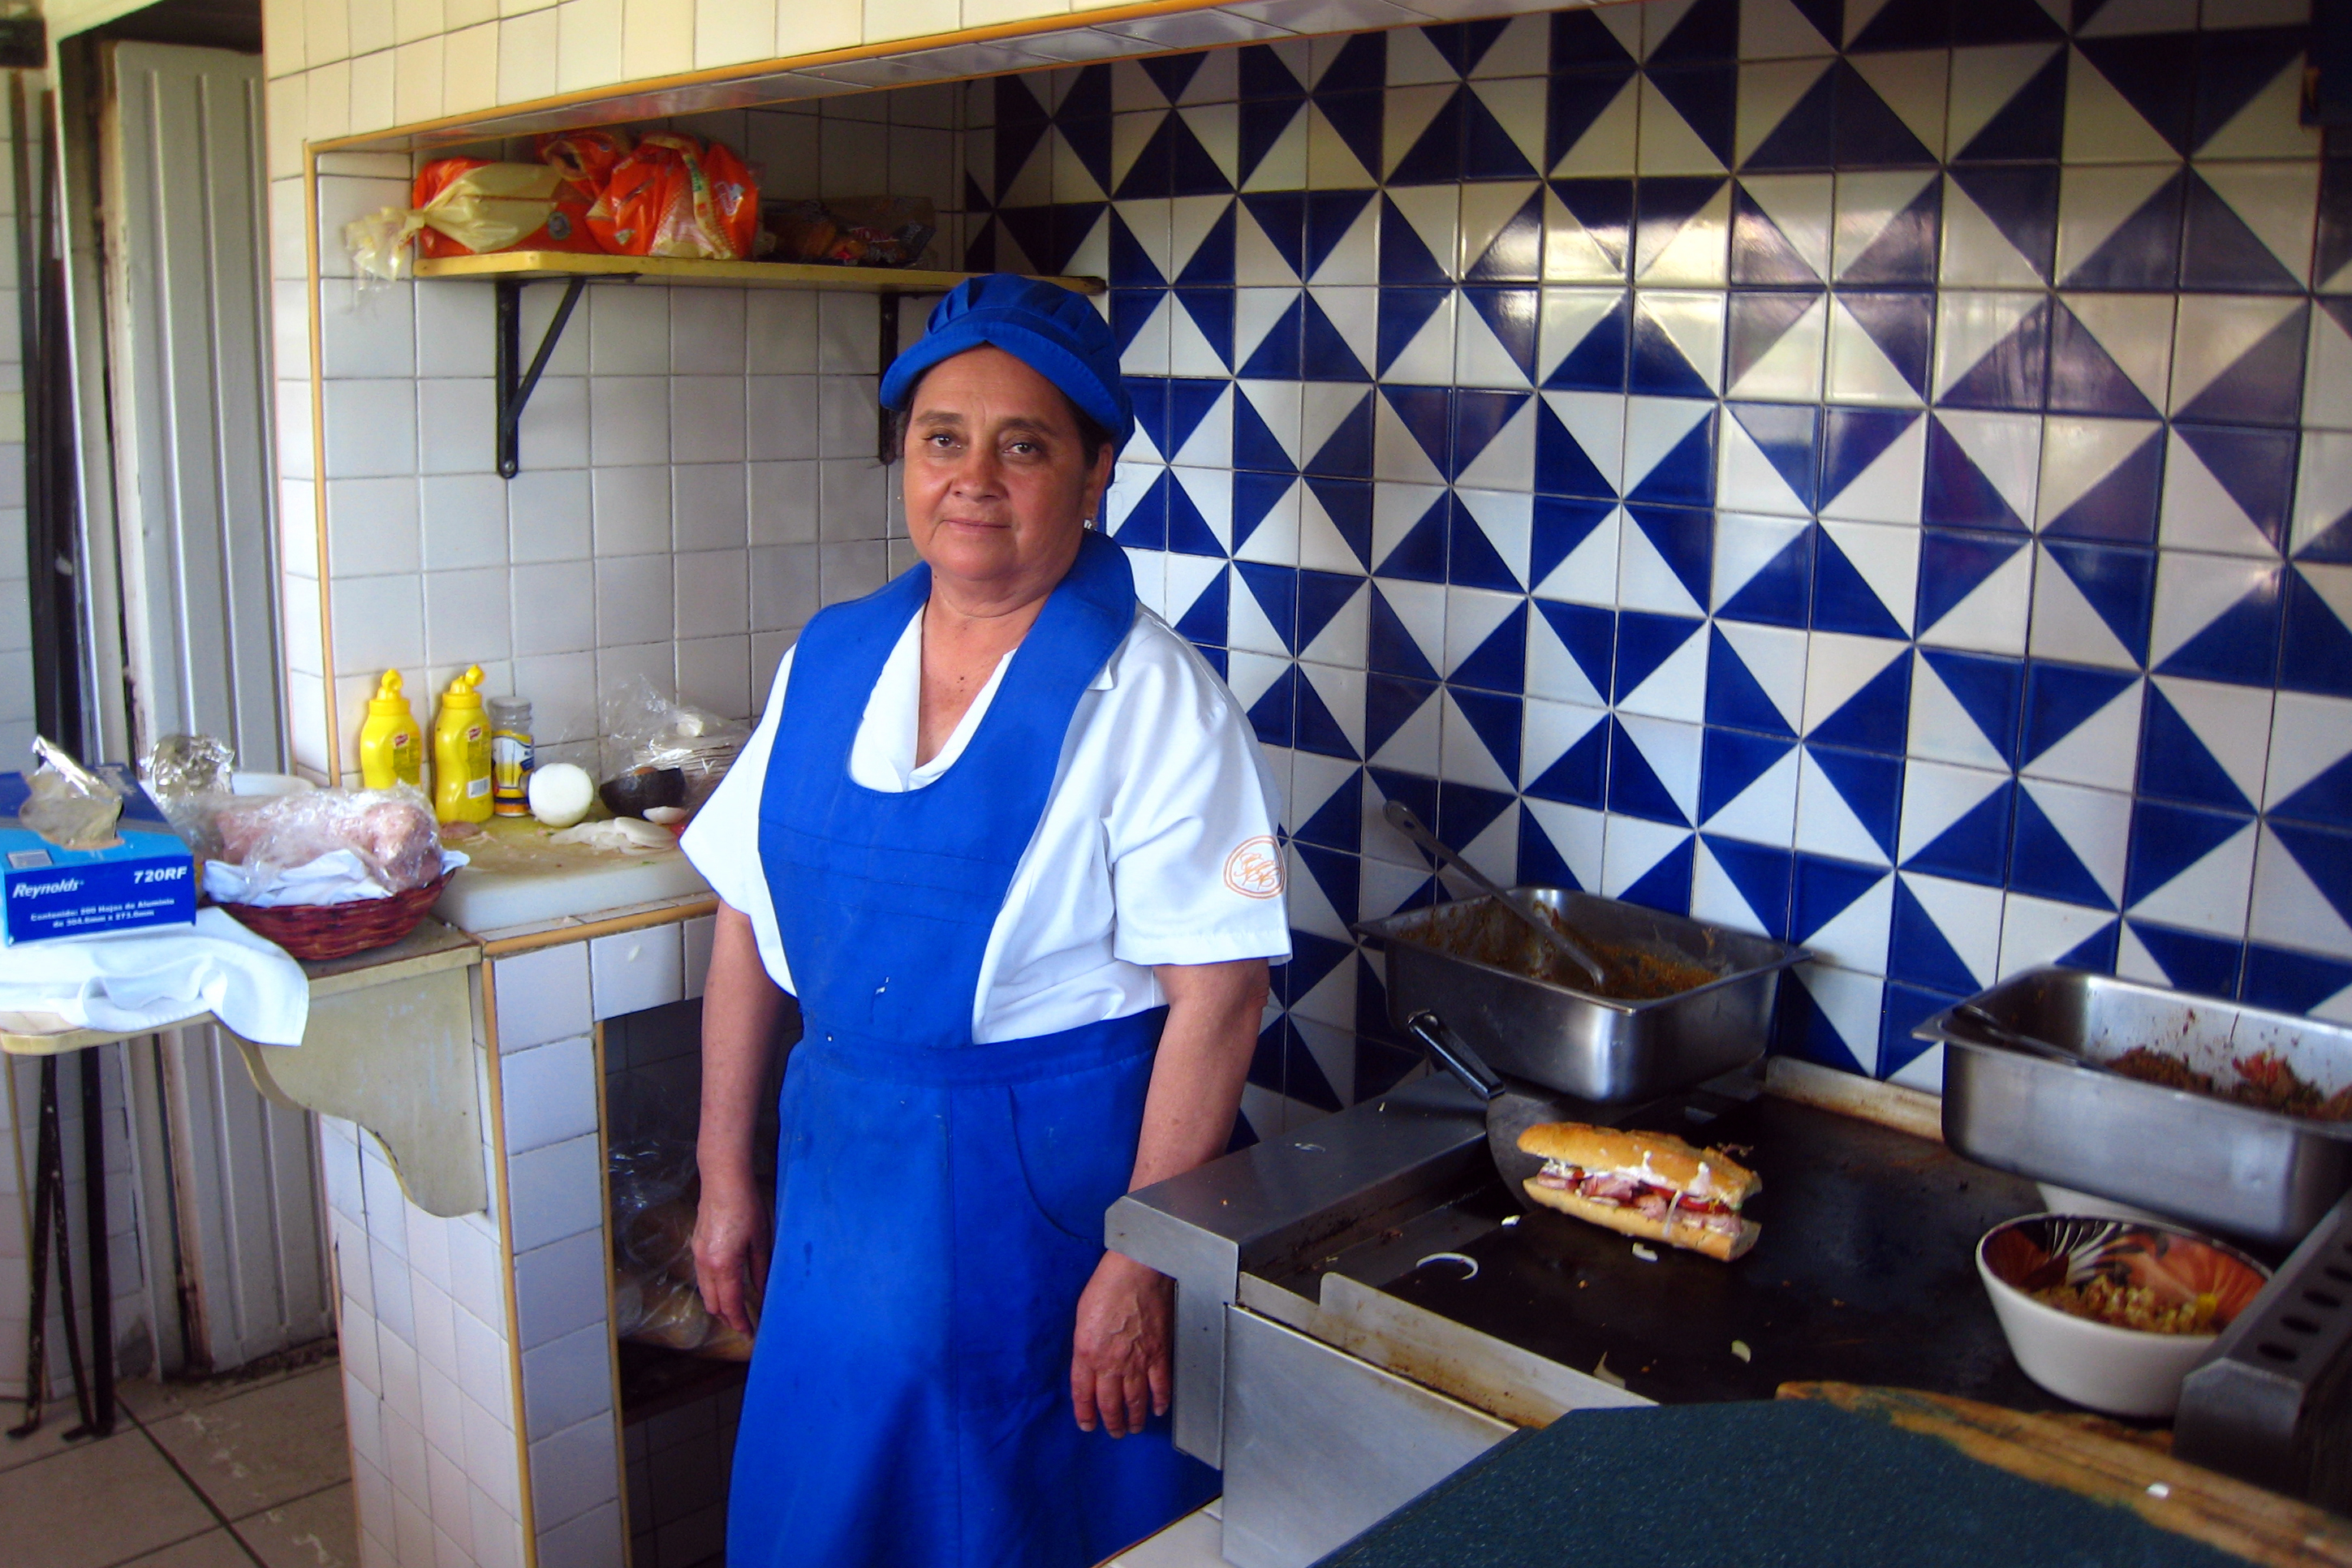 Angelita Rodriguez, who is one of many touched by the kindness of Lorena Ochoa.